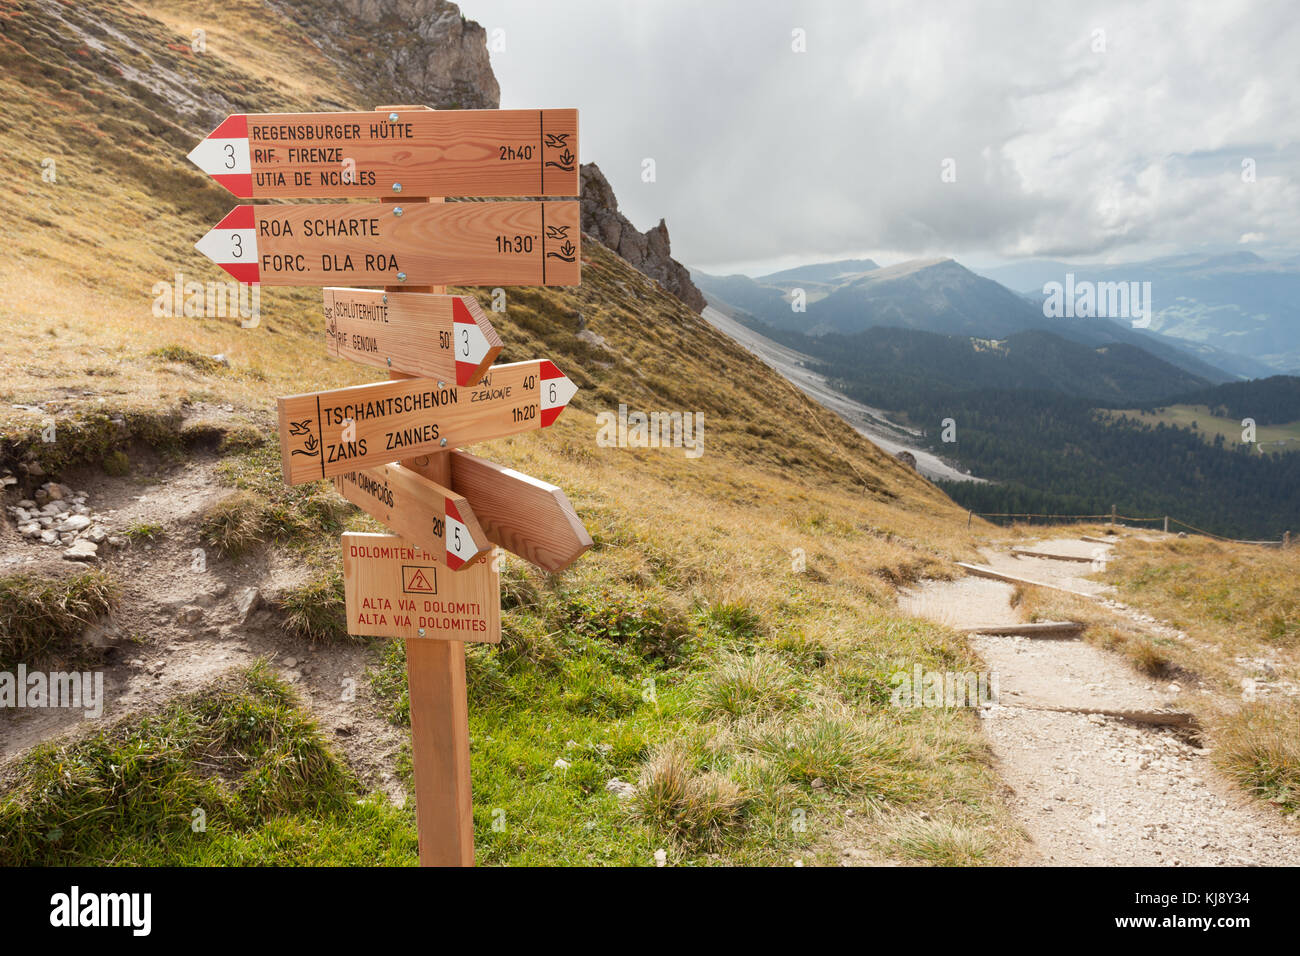 ST. MAGDALENA, ITALY - SEPTEMBER 15, 2015: In autumnal environment wooden path signs indicates the correct direction - Stock Image